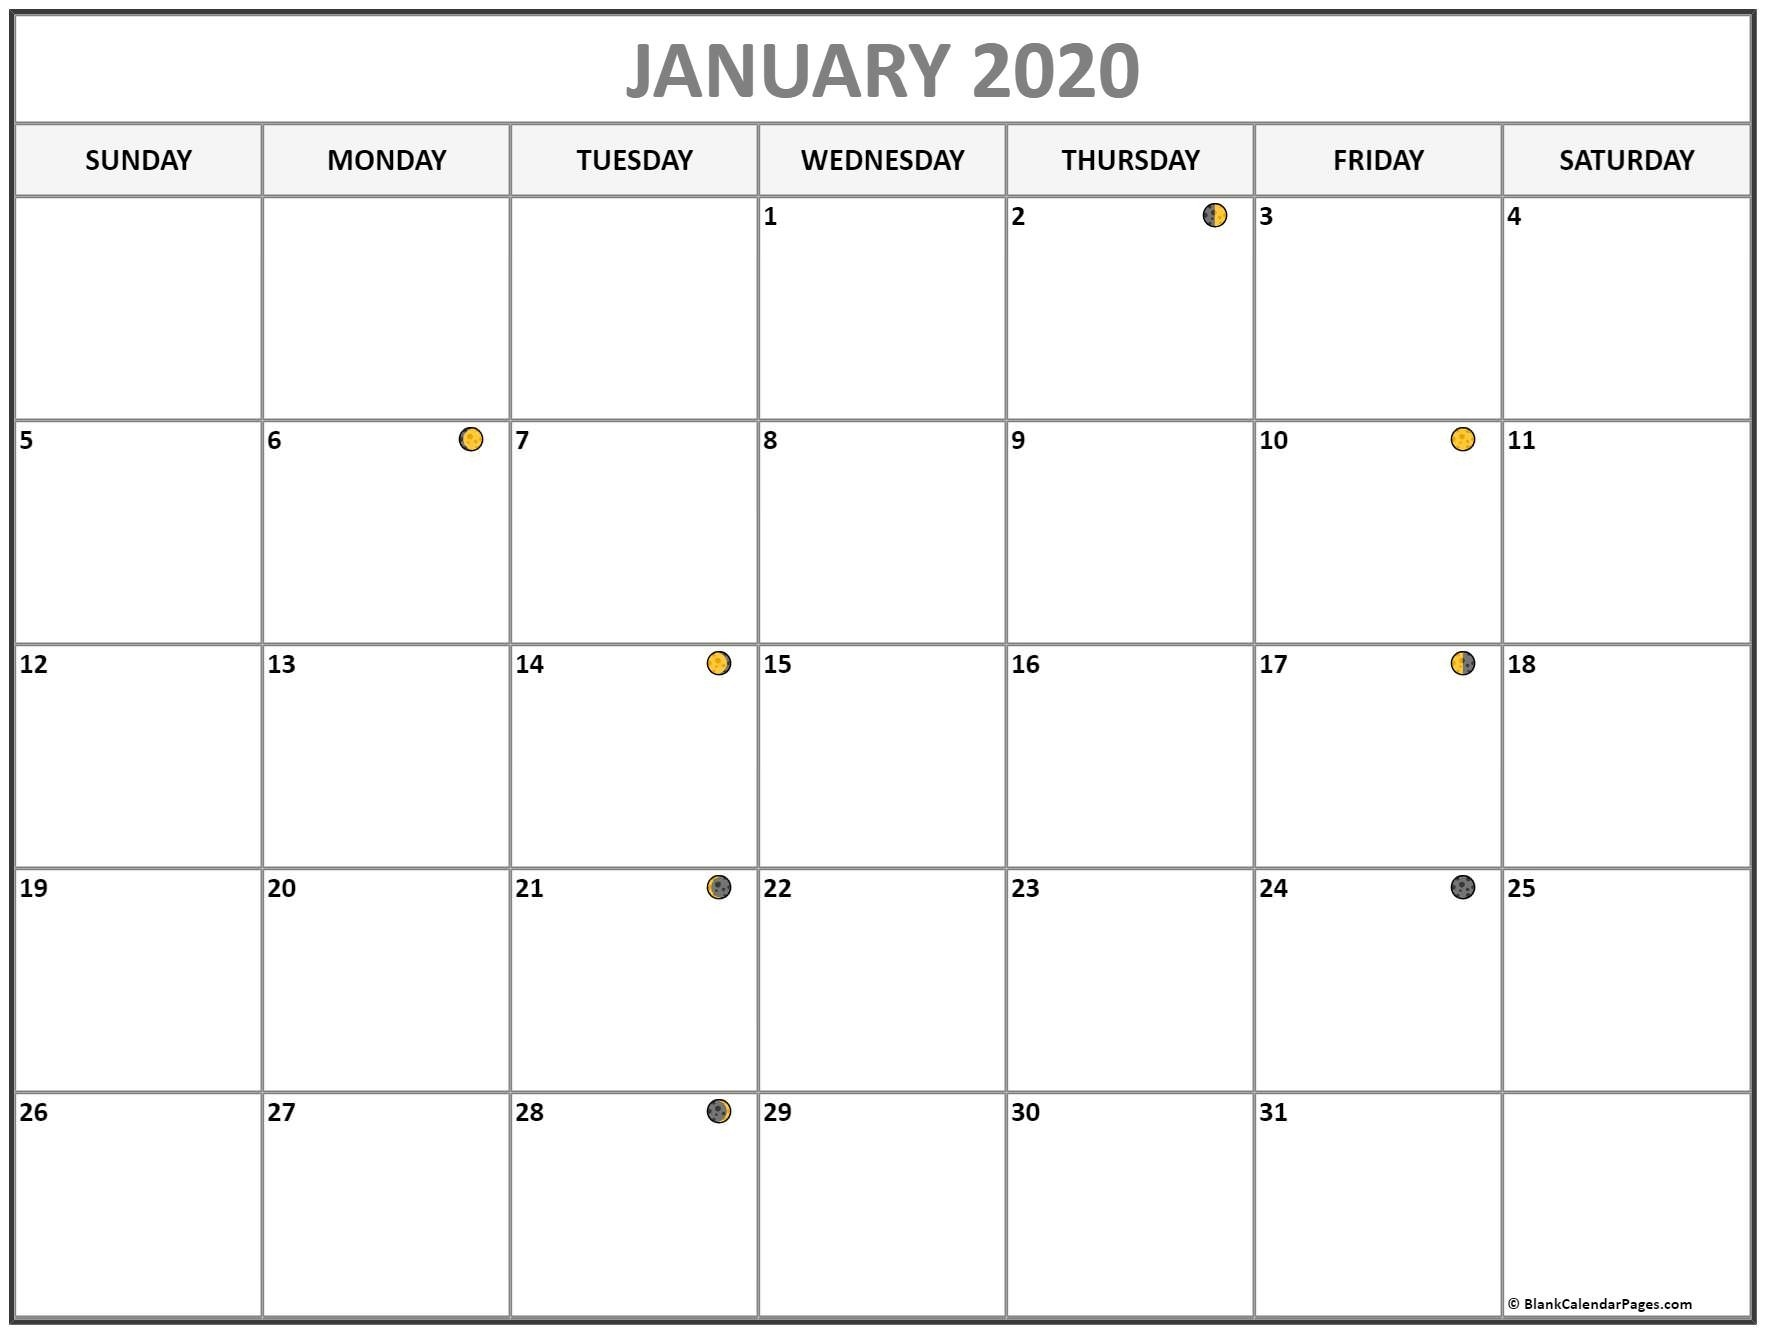 January 2020 Lunar Calendar | Moon Phase Calendar  Lunar And Solar Calendar 2020